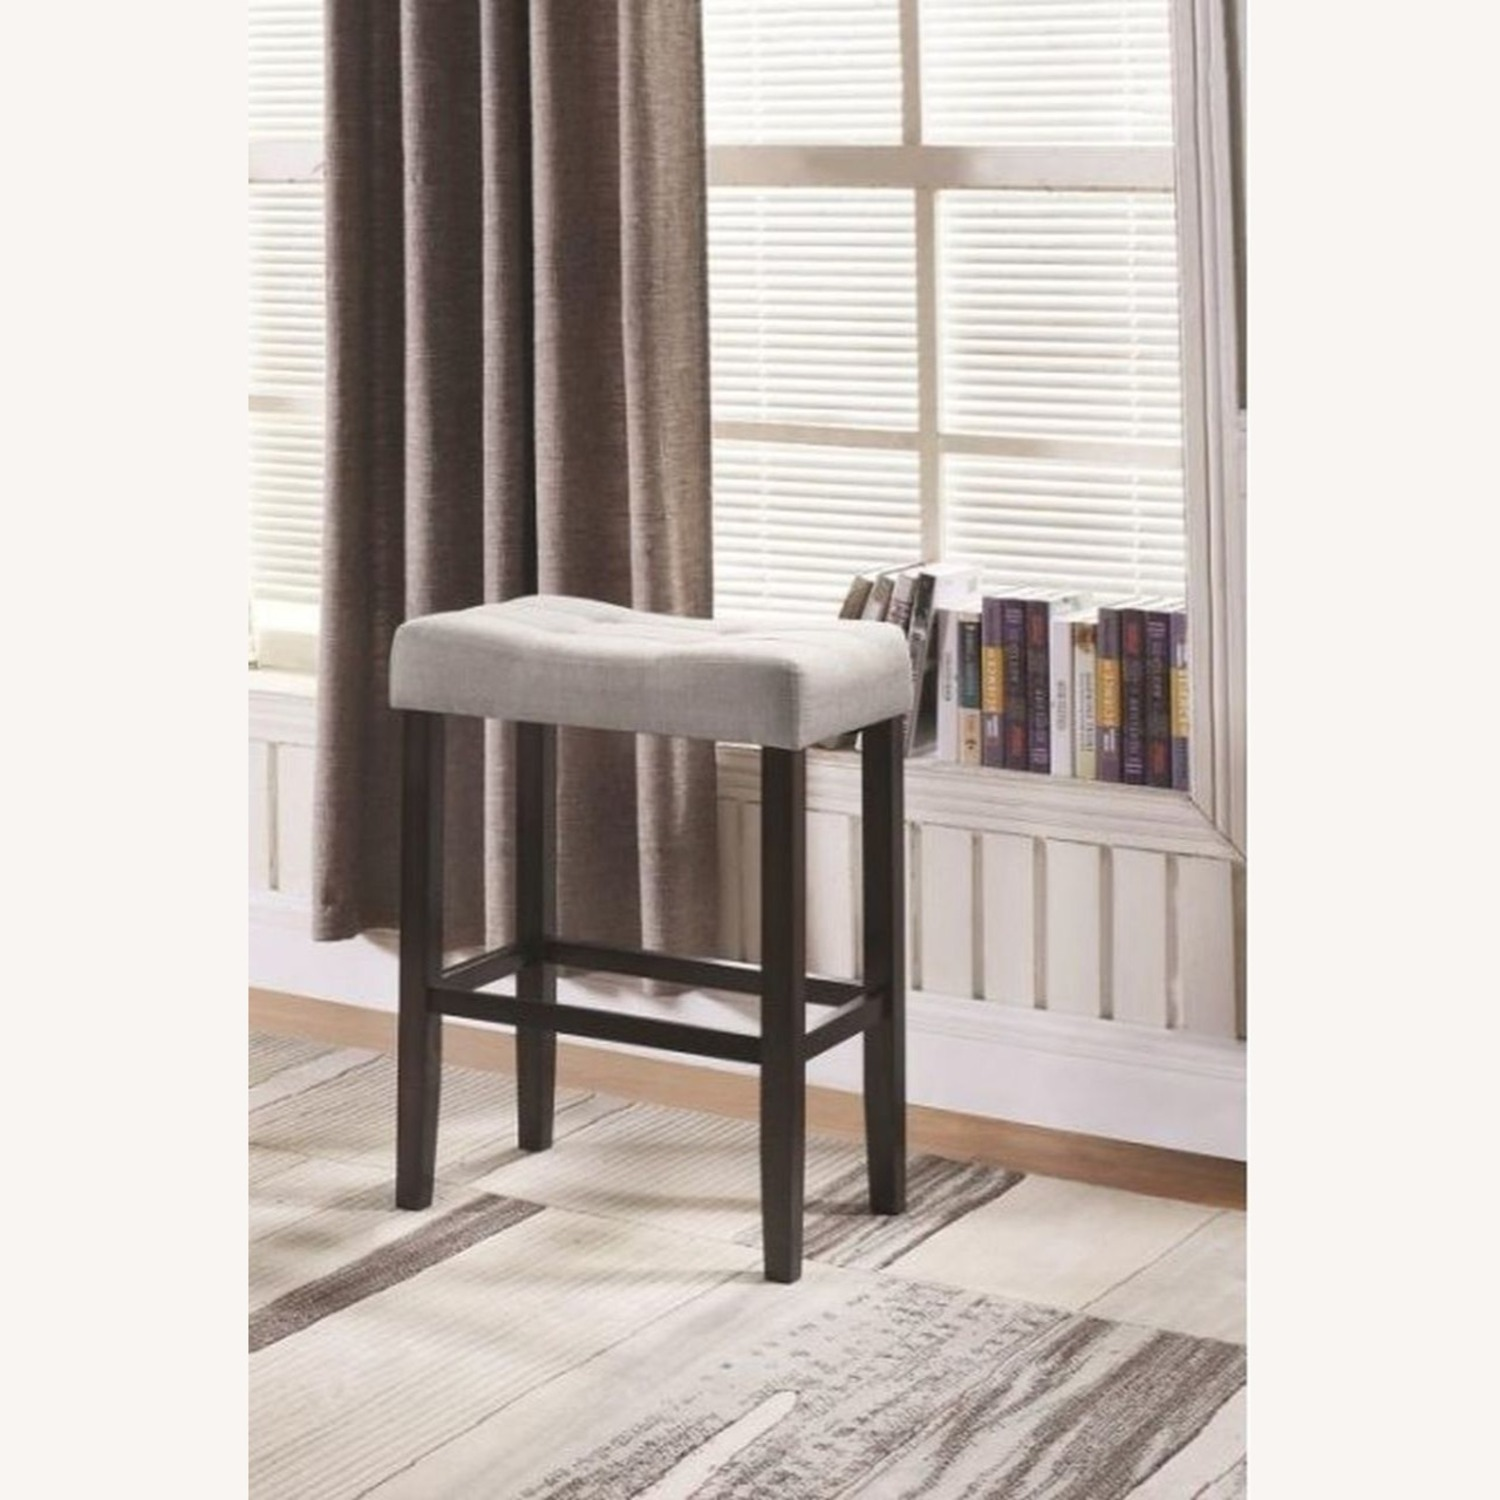 Bar Stool In Grey Fabric W/ Tufted Seating - image-3